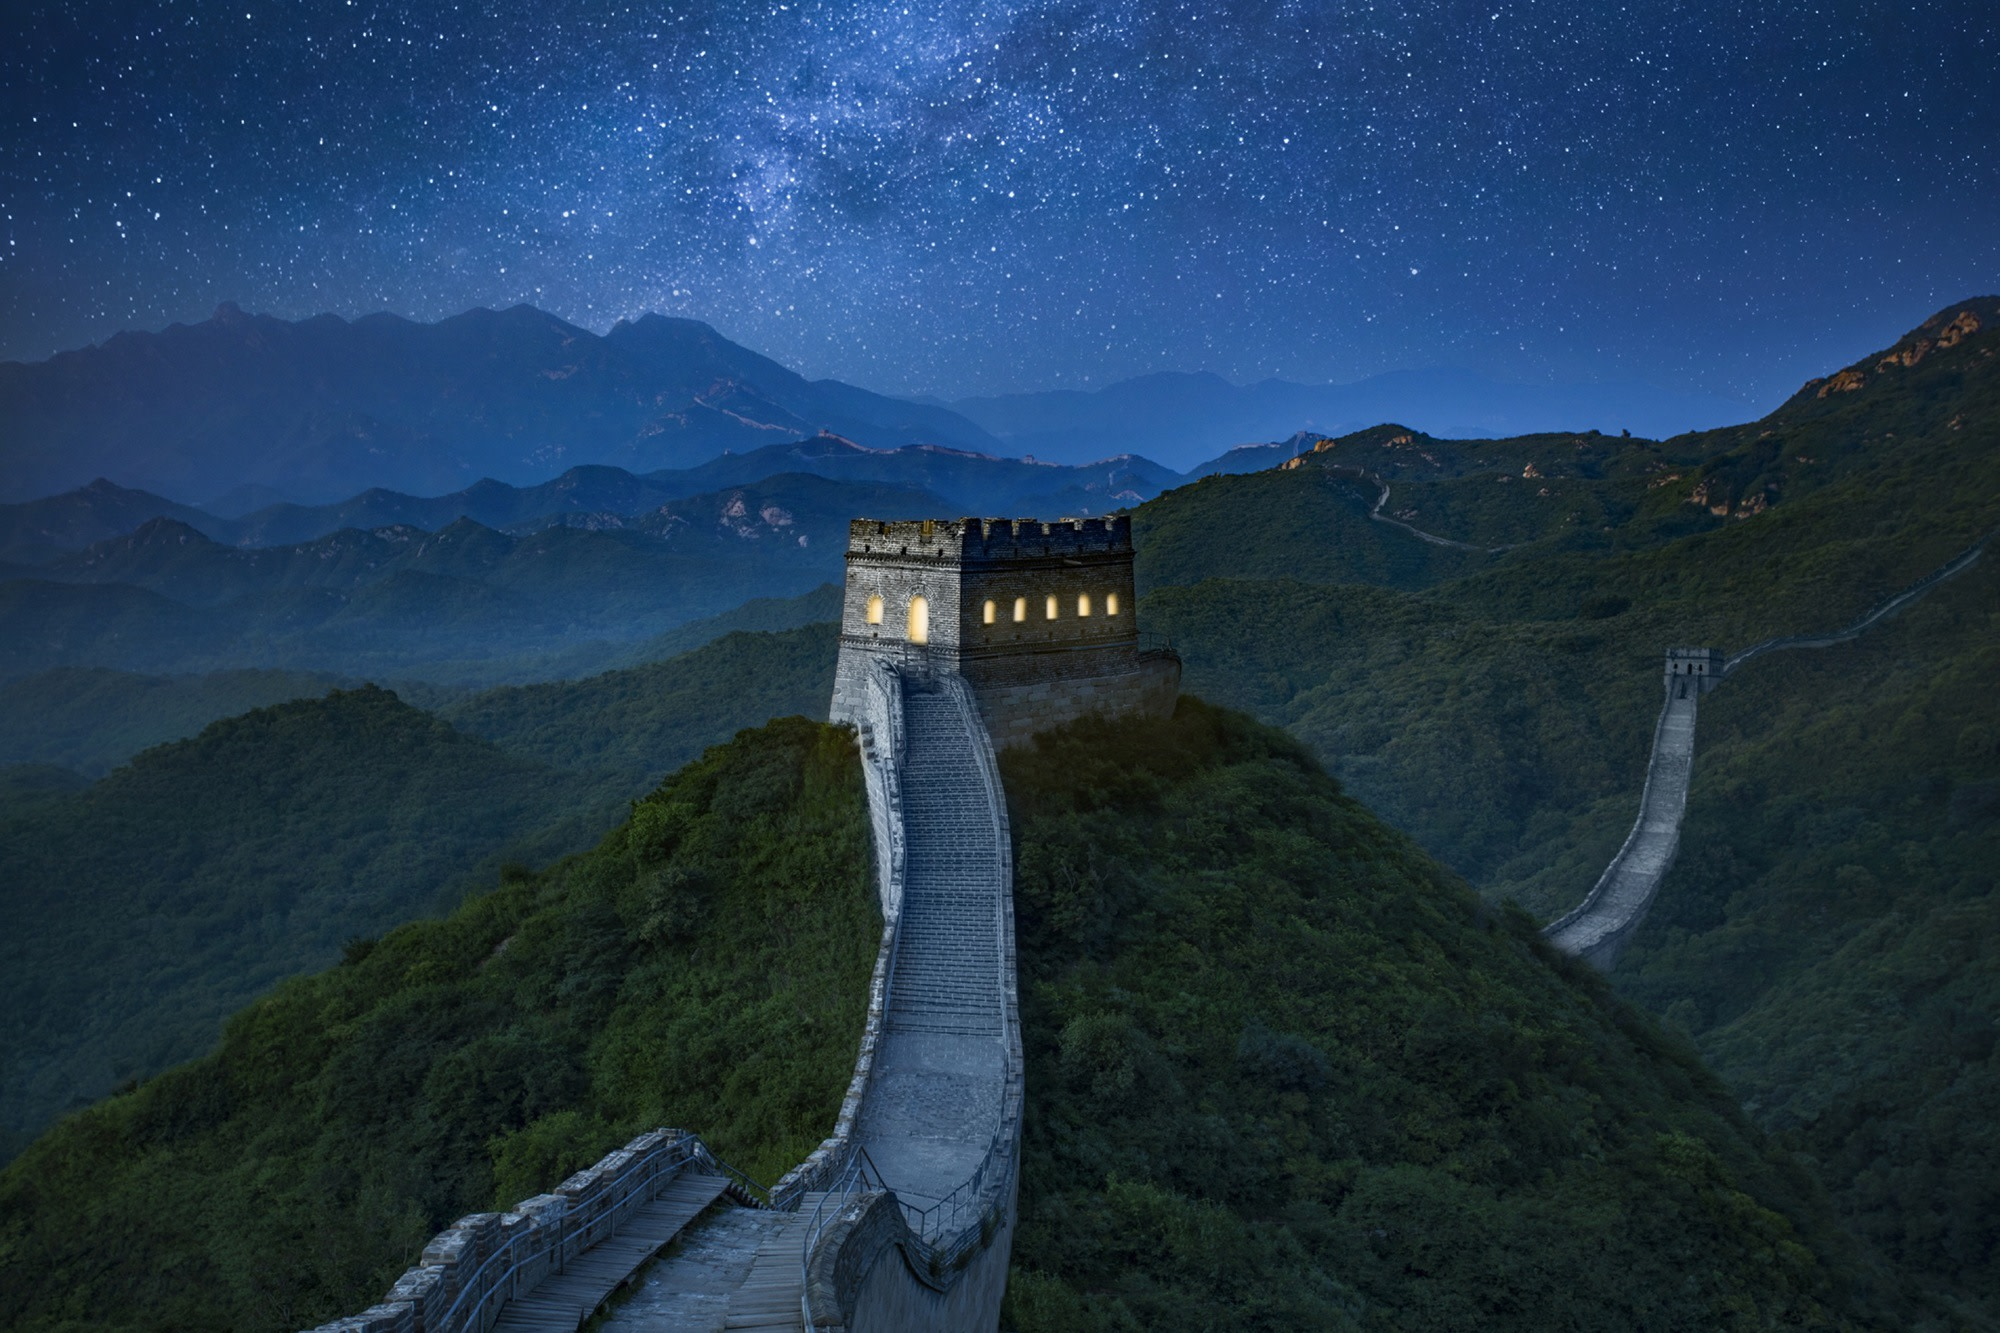 The Great Wall of China   Source: archdaily.com